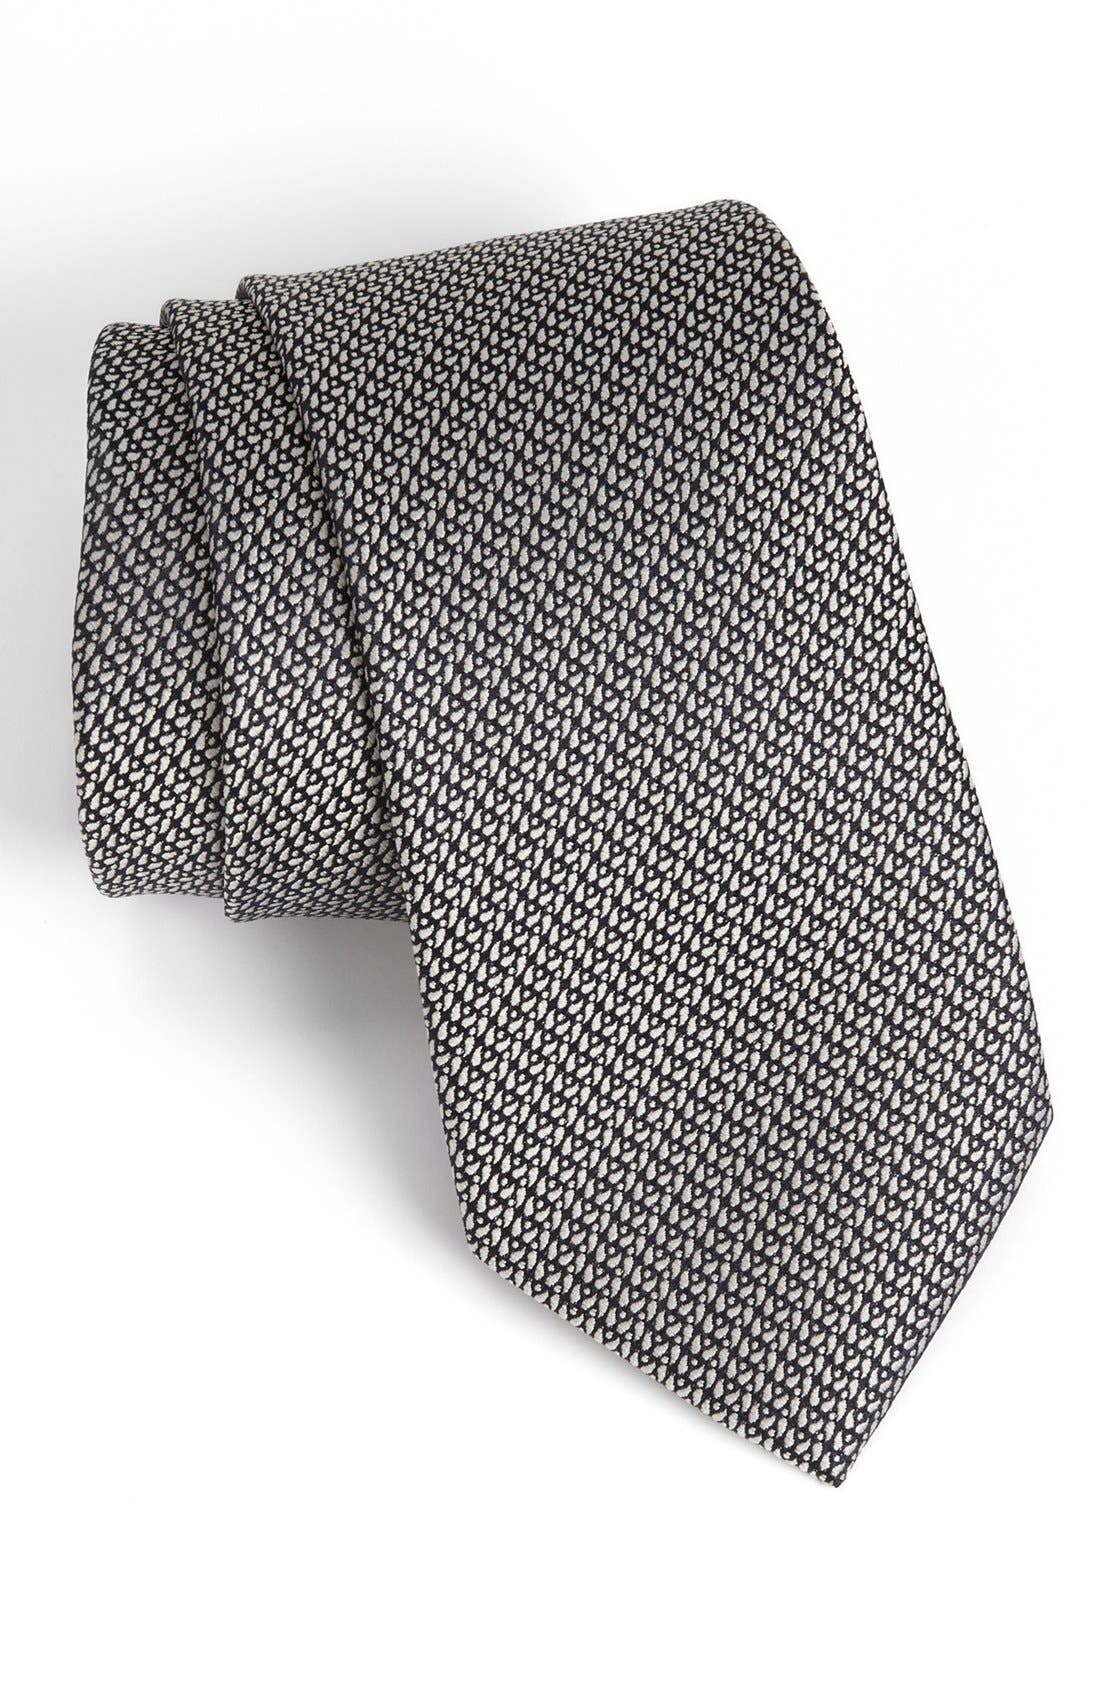 Main Image - Z Zegna Woven Tie